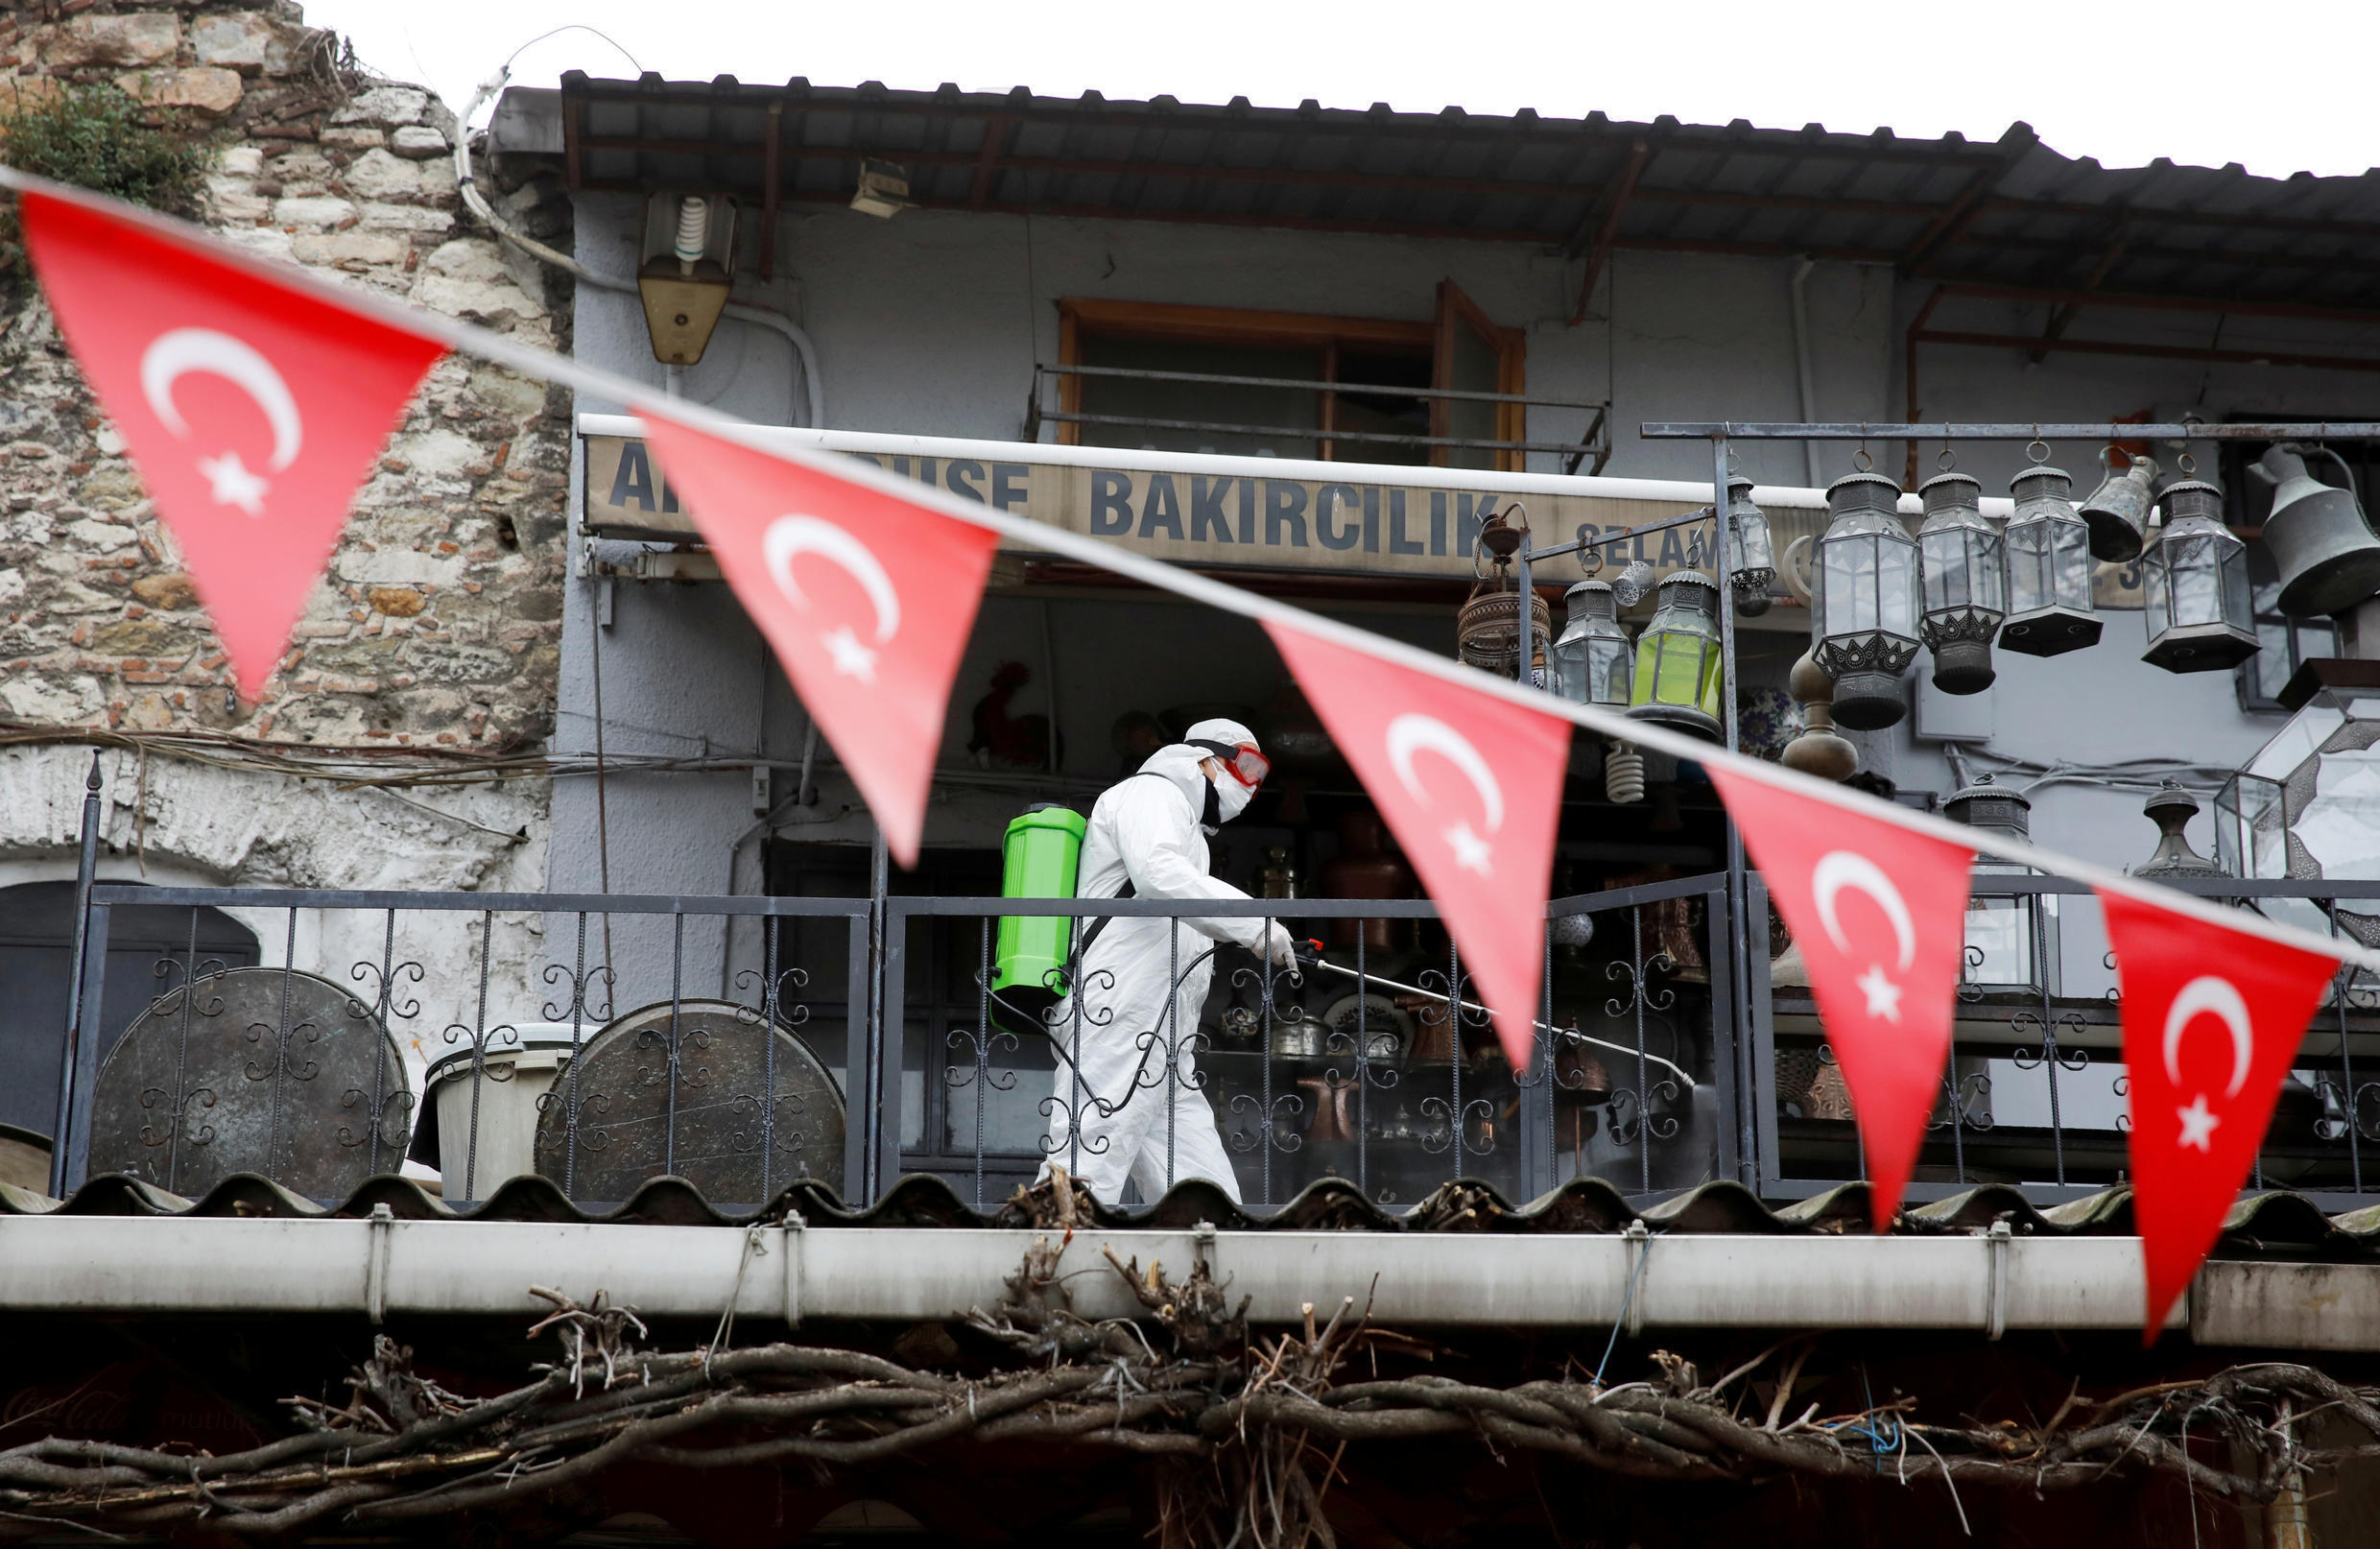 A worker in a protective suit sprays disinfectant at Grand Bazaar, known as the Covered Bazaar, to prevent the spread of coronavirus disease, in Istanbul, Turkey, March 25, 2020.